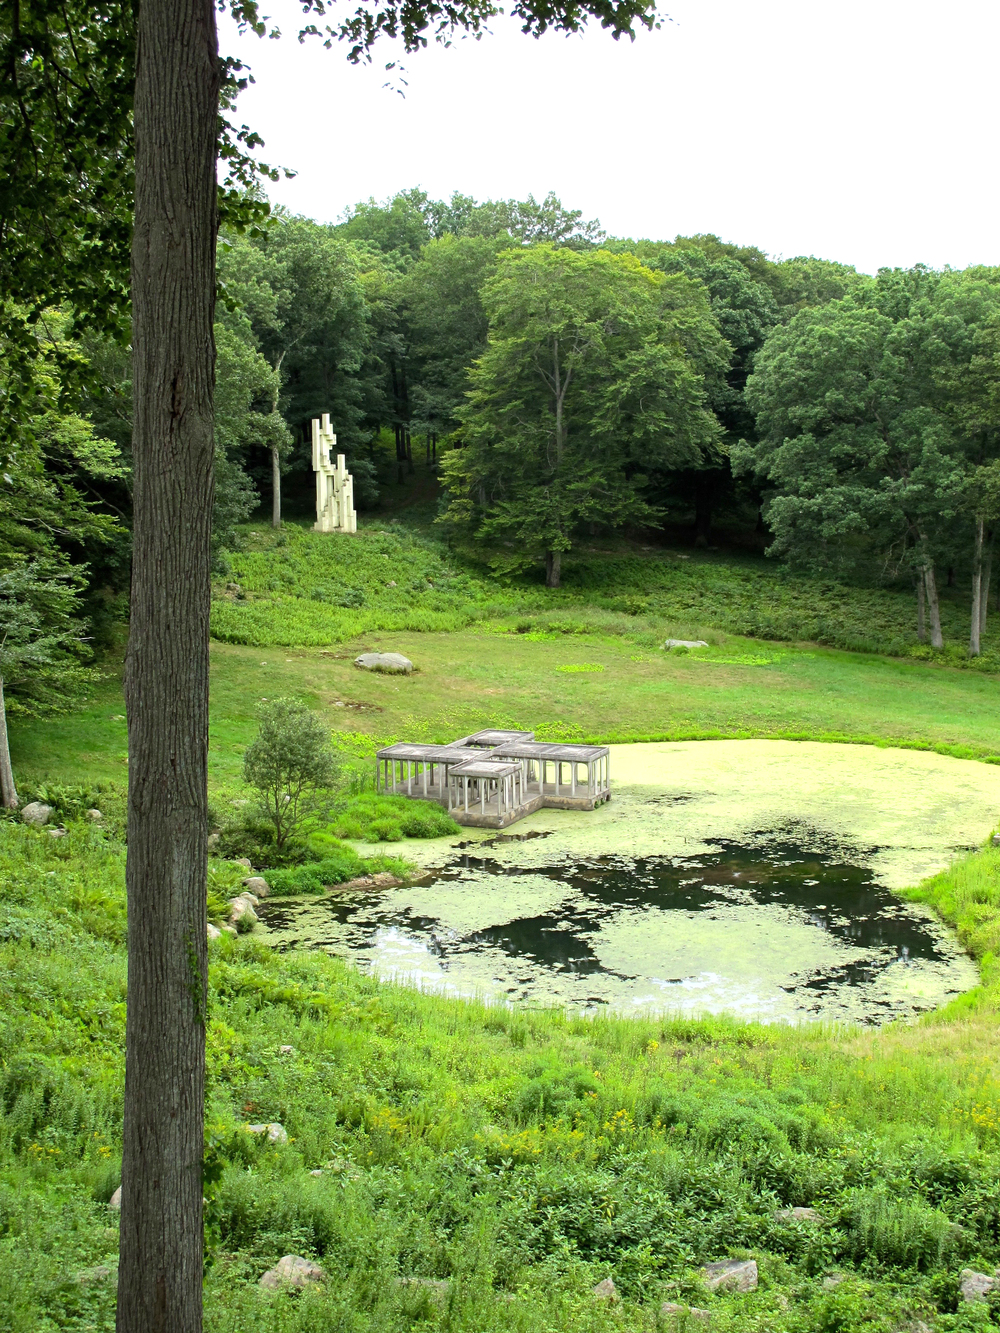 Pavilion in the Pond  (foreground) plays with scale to make it seem much further away than it is. In the background,  Monument to Lincoln Kirstein , 1985, that Johnson had built in honor of his friend and poet, Lincoln Kirstein.